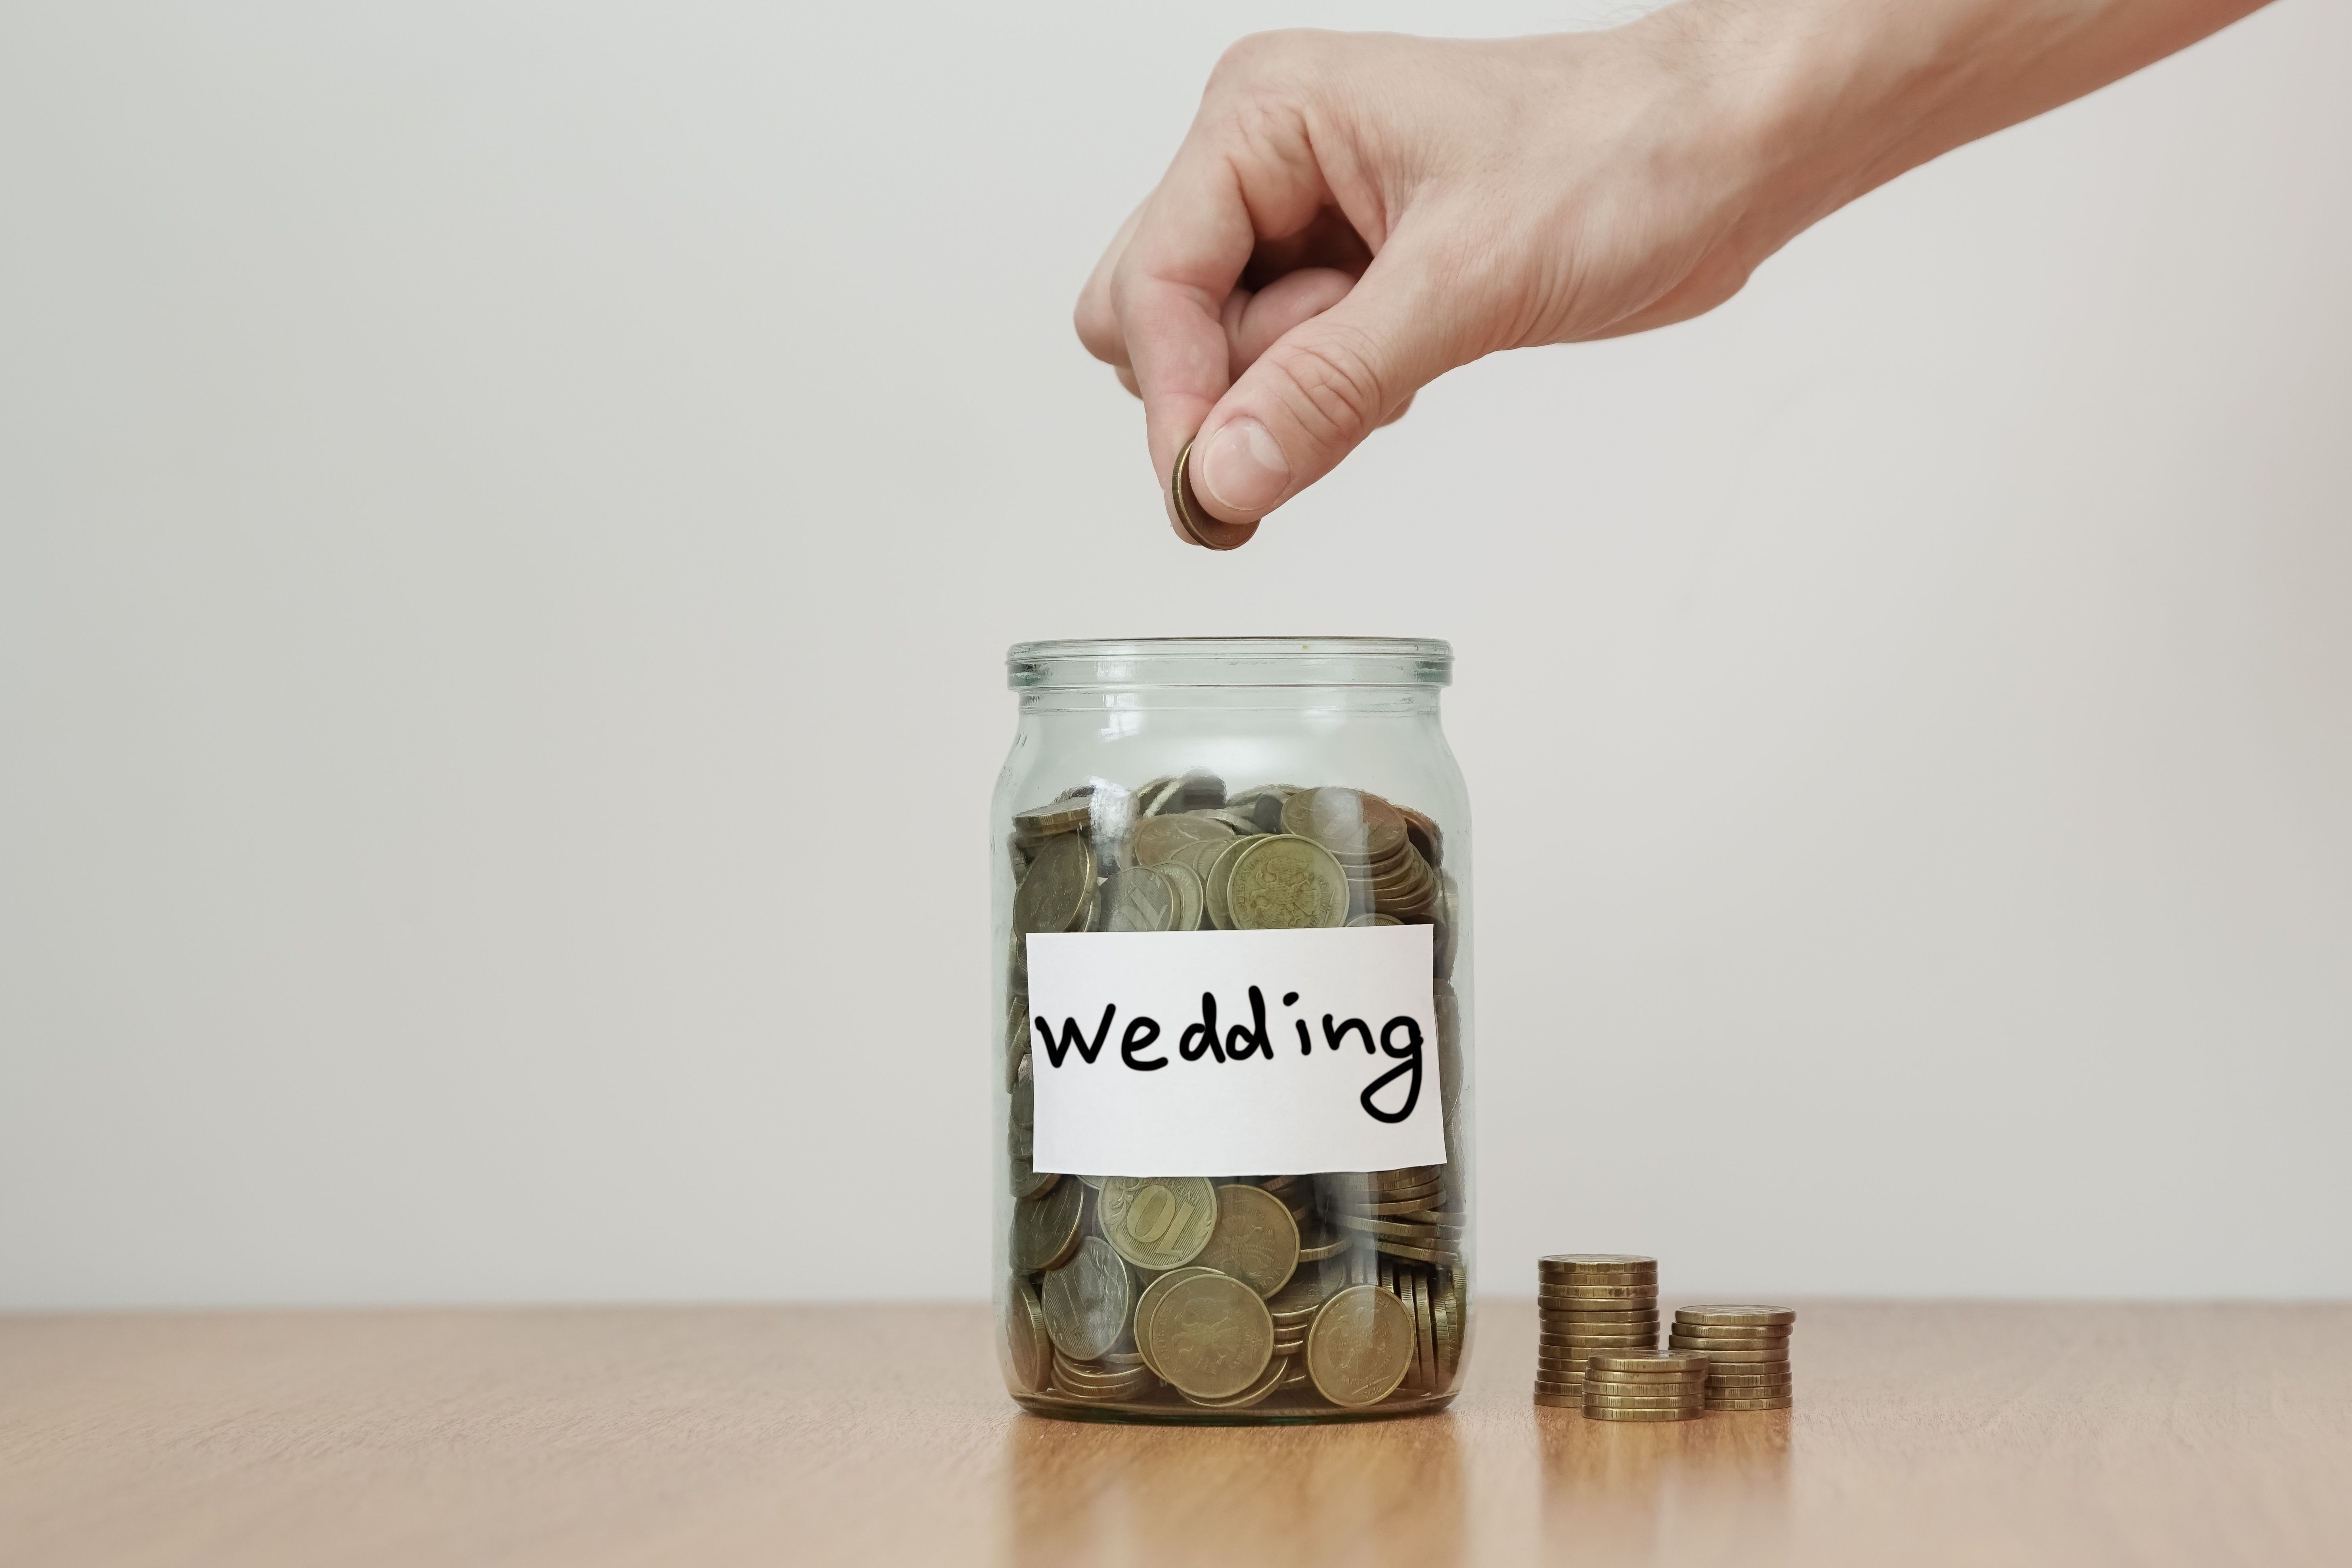 Free Wedding Stuff To Help You Save On Your Big Day